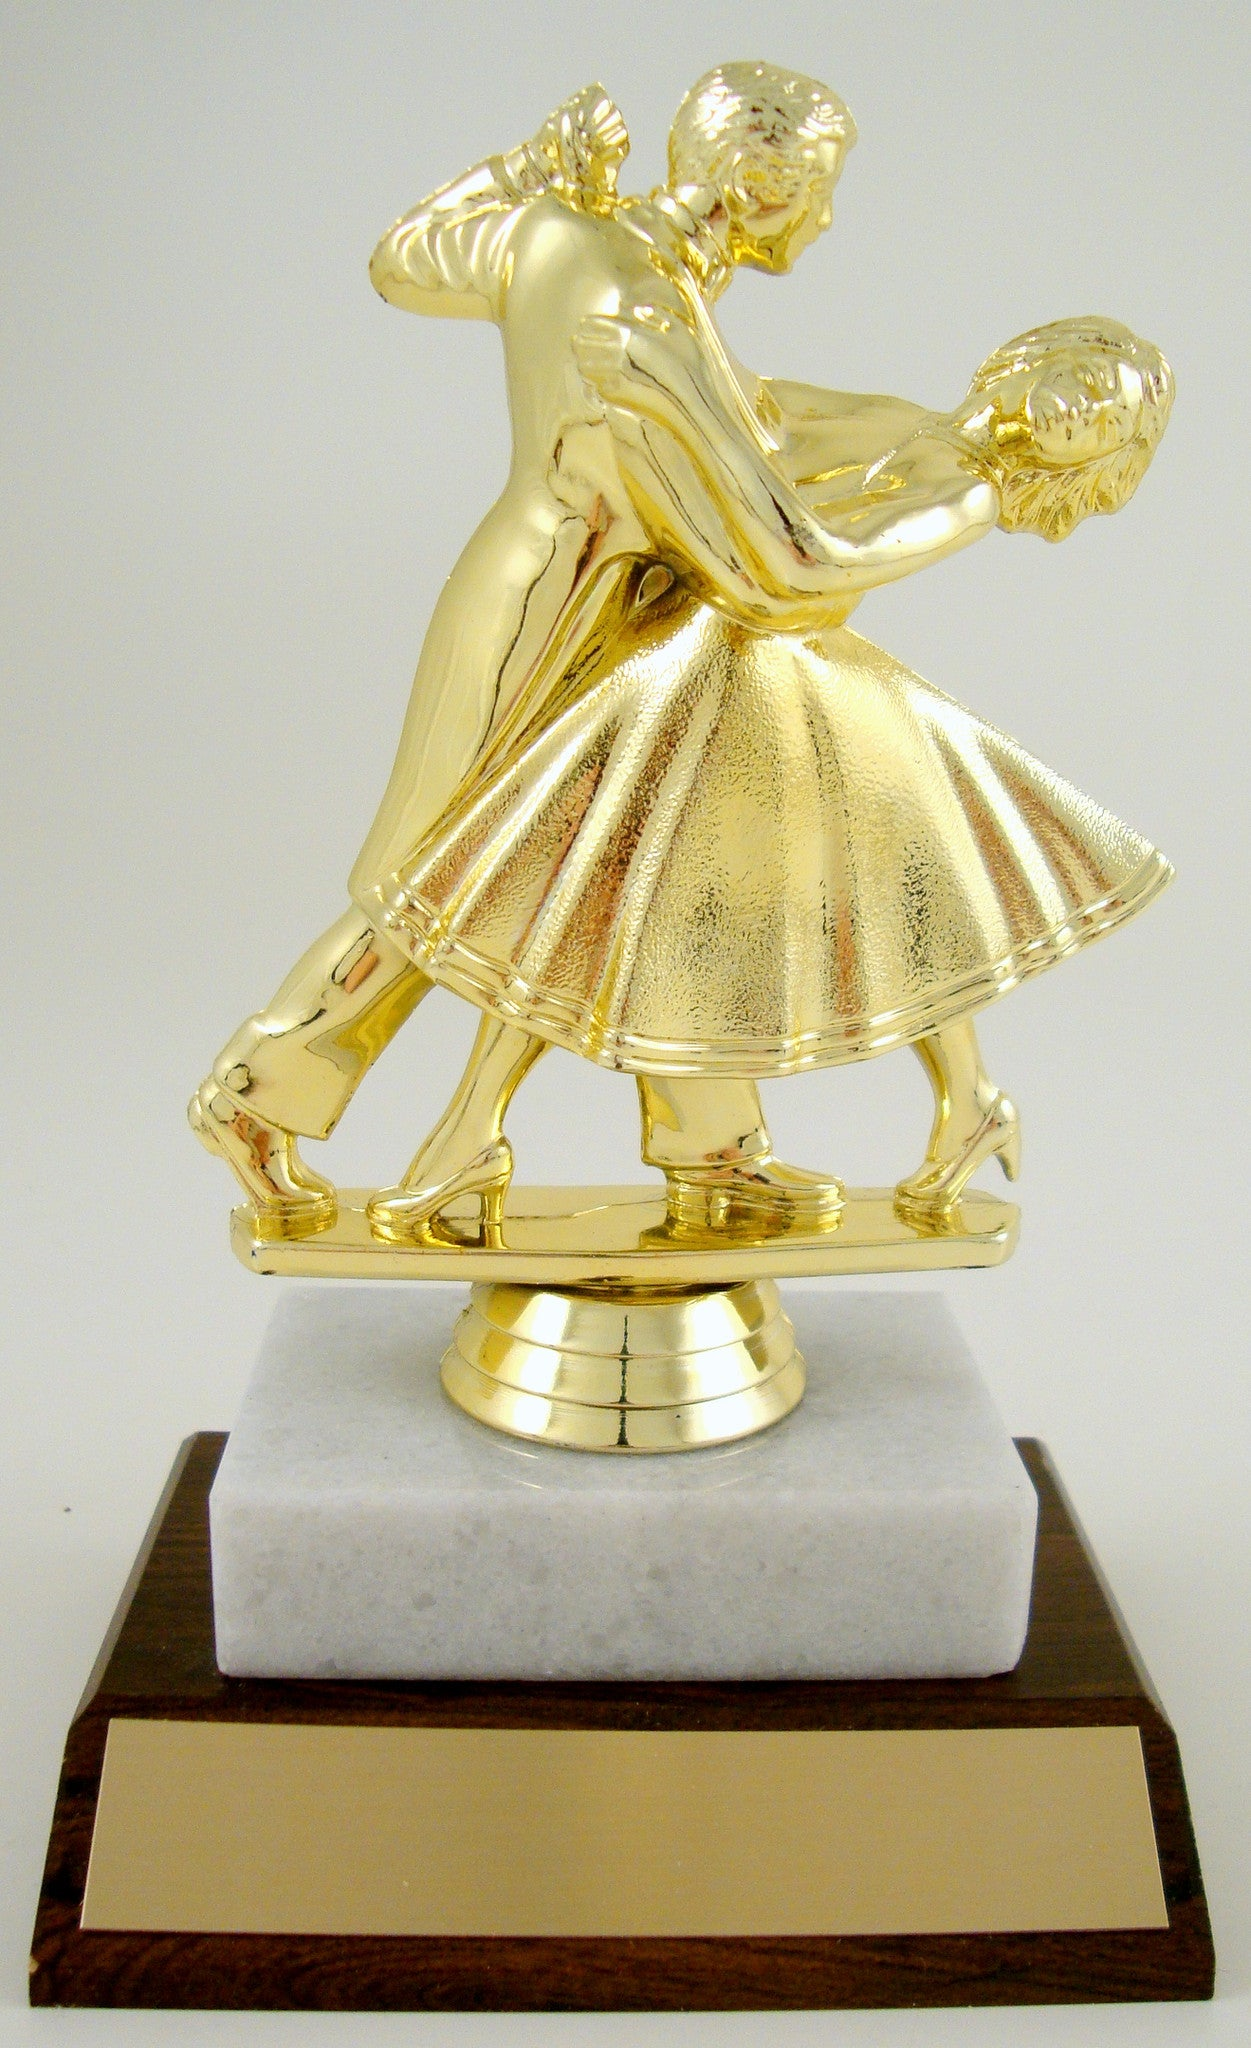 Dance Couple Trophy On White Marble and Wood Base-Trophies-Schoppy's Since 1921